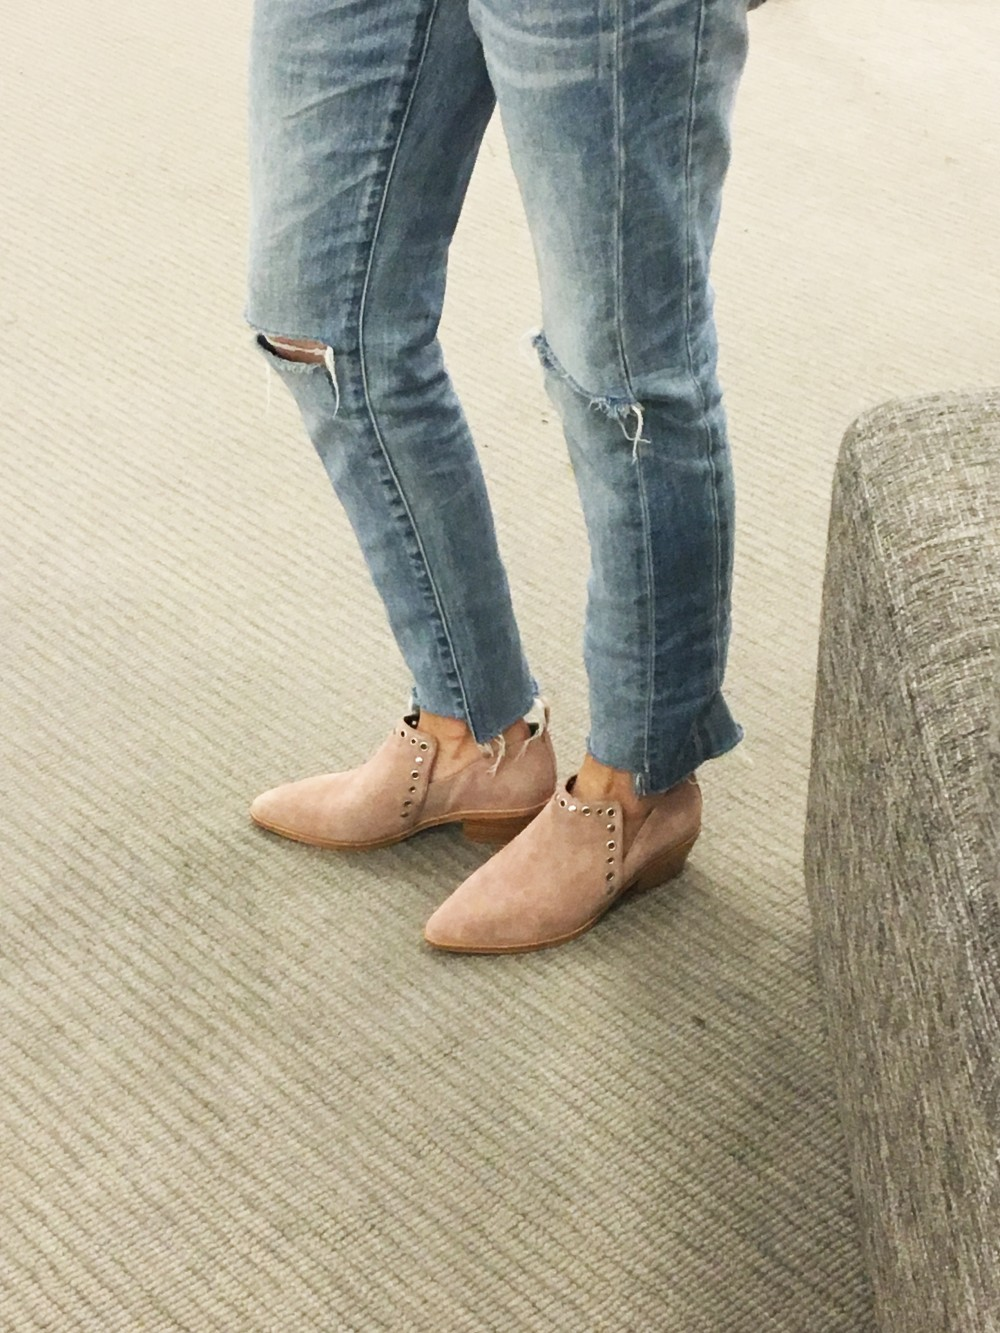 Dressing Room Diaries- Nordstrom Anniversary Sale-Fall Booties-Blogger Picks for the NSale-Nordstrom Sale-Fall Style-Fall Fashion 2017-Have Need Want 4